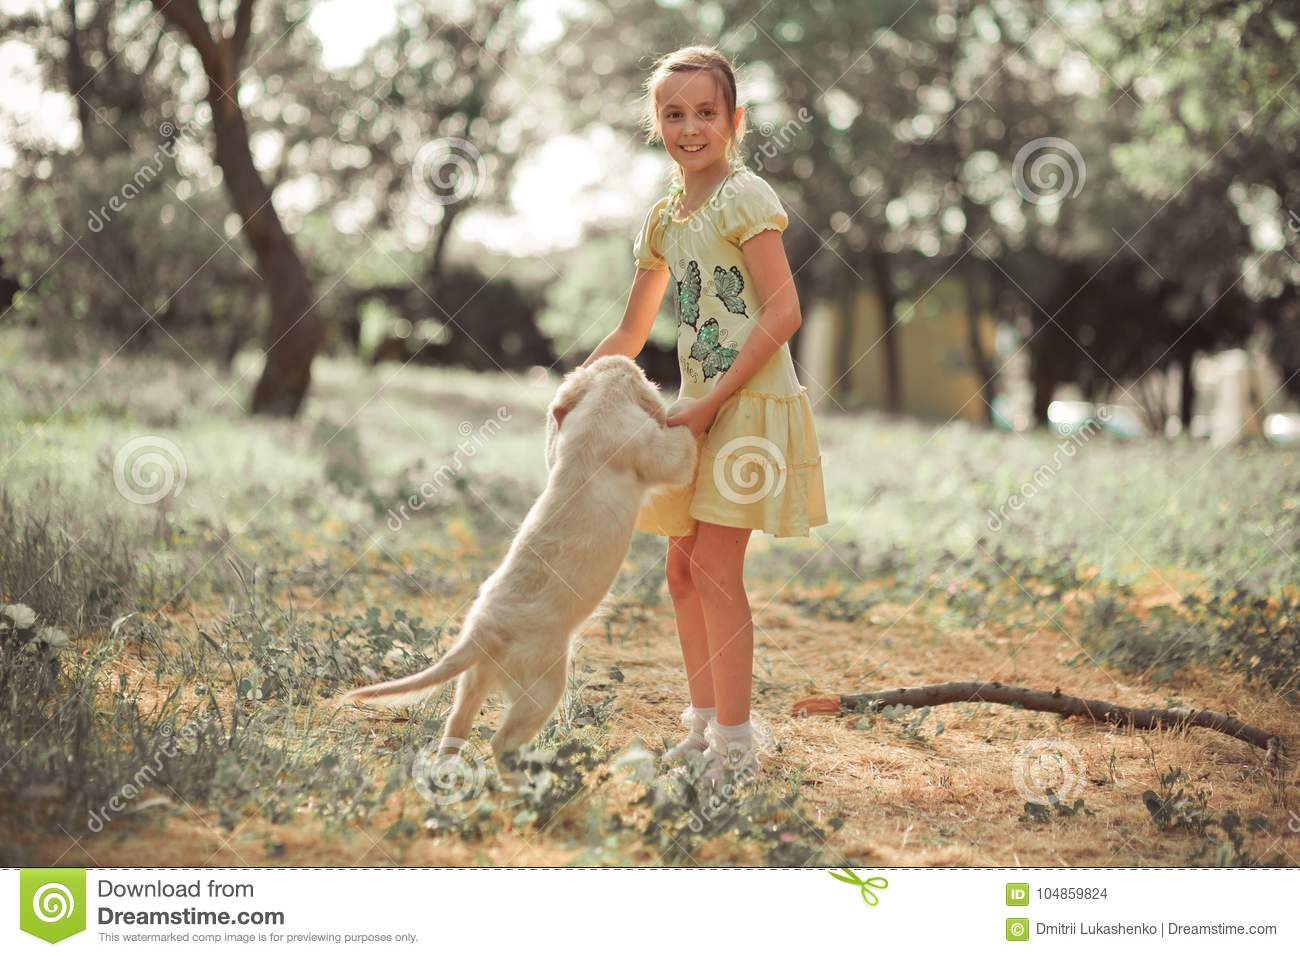 Retriever Pup Lovely Scene Cute Young Teen Girl Enjoying Posing Summer Time Vacation With Best Friend